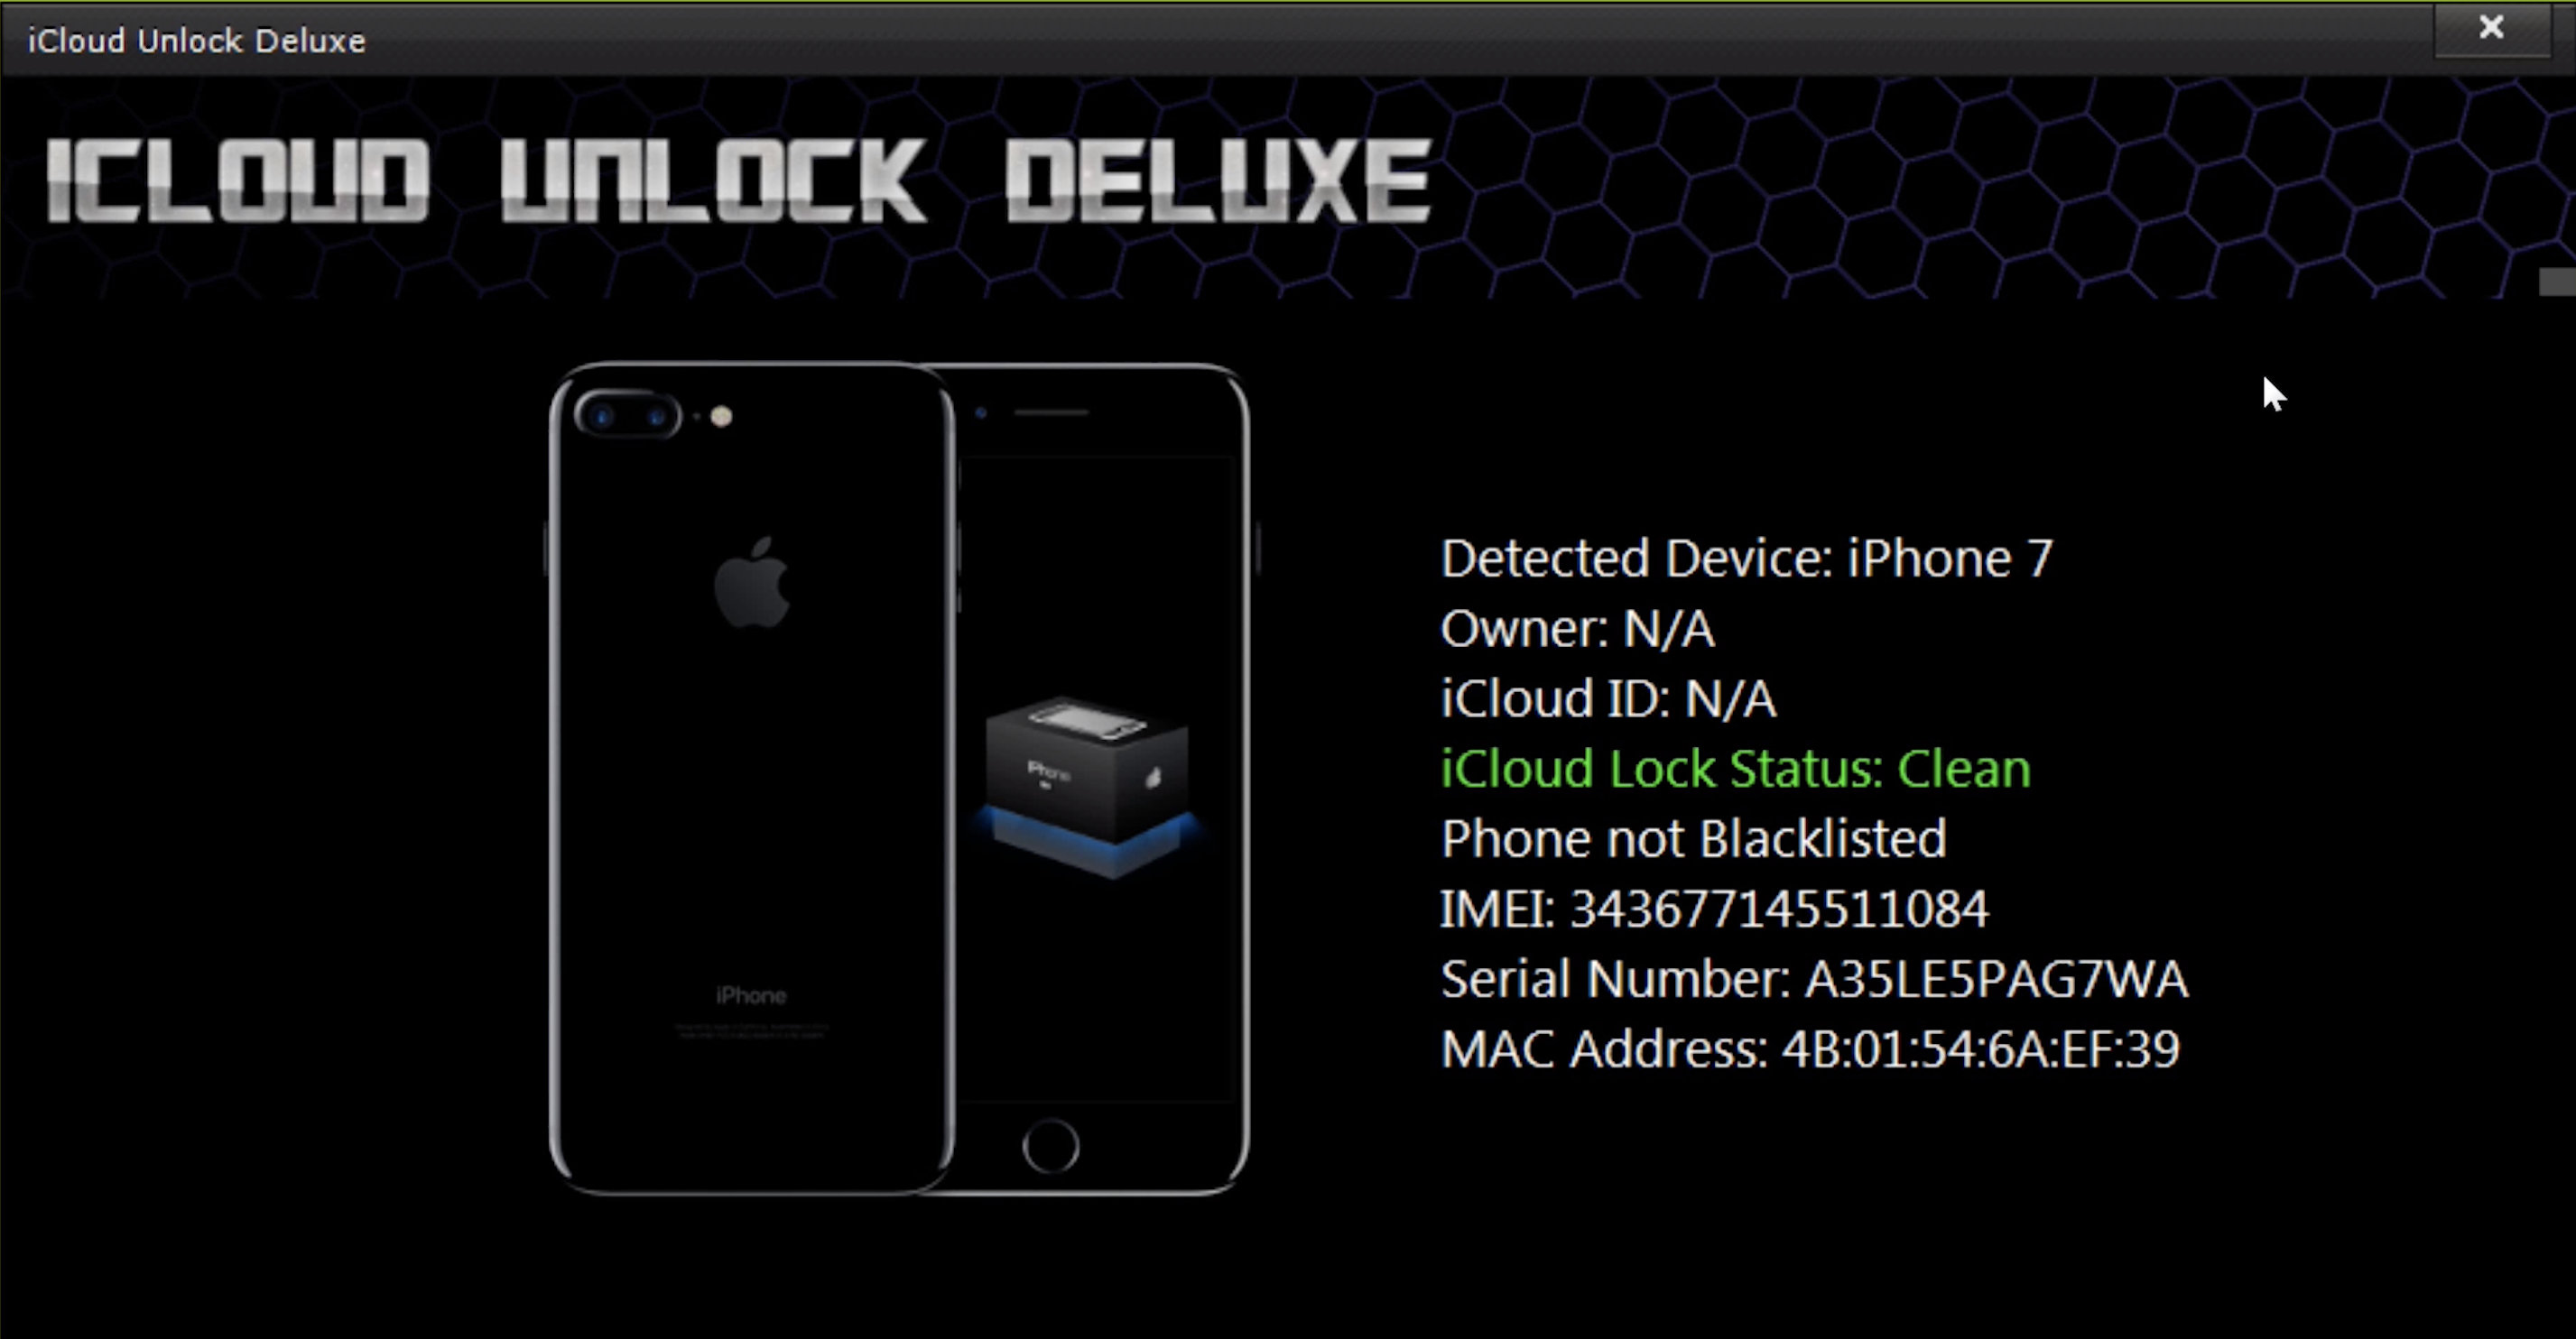 iCloud Unlock Deluxe Finished